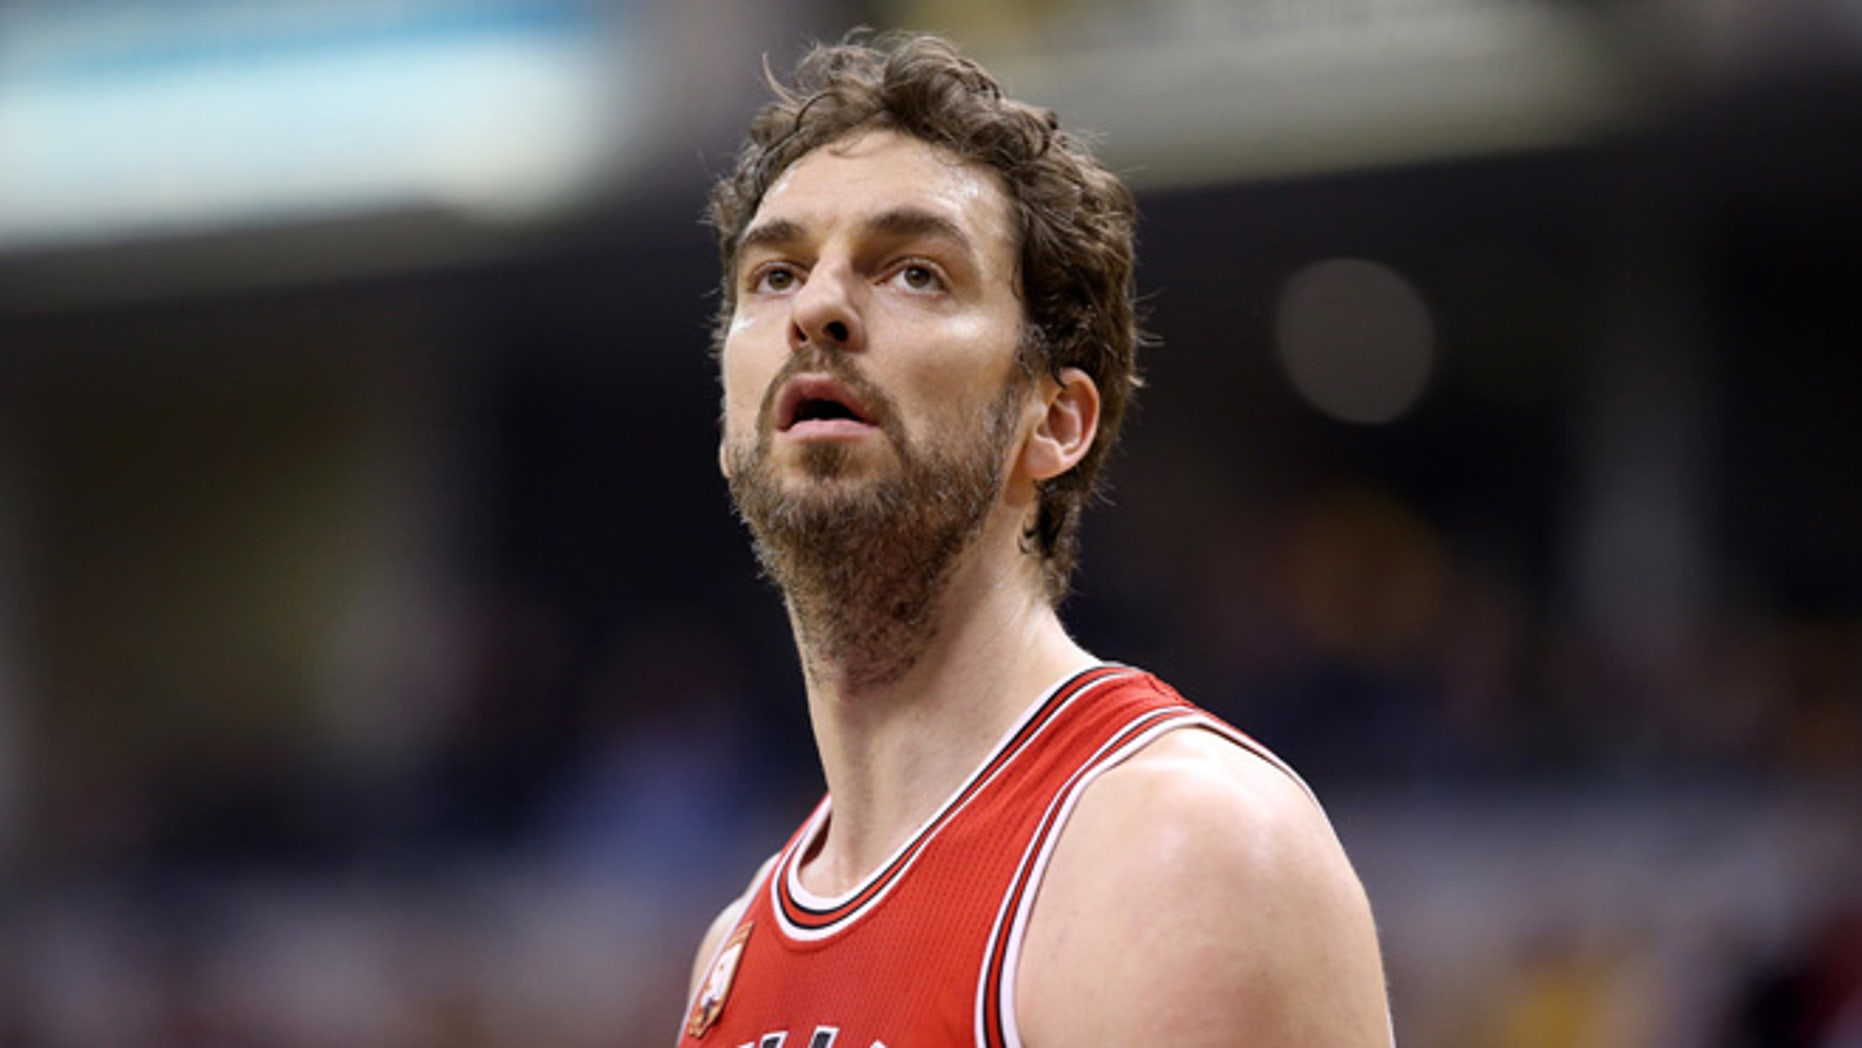 Pau Gasol on March 29, 2016 in Indianapolis, Indiana.